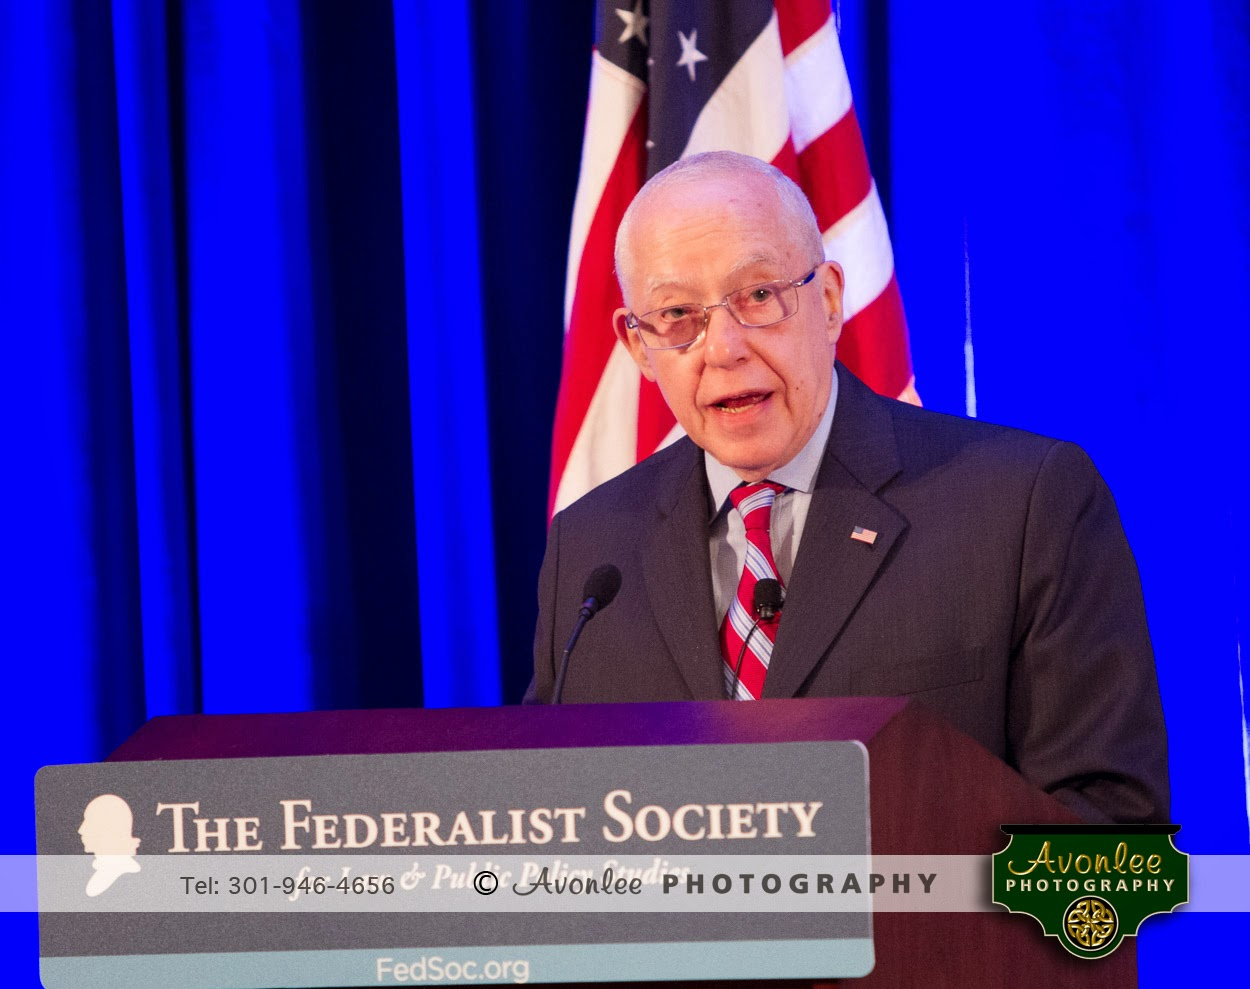 US Attorney General Michael Mukasey, 2014, National Lawyers Convention, Washington DC, Event Photographer